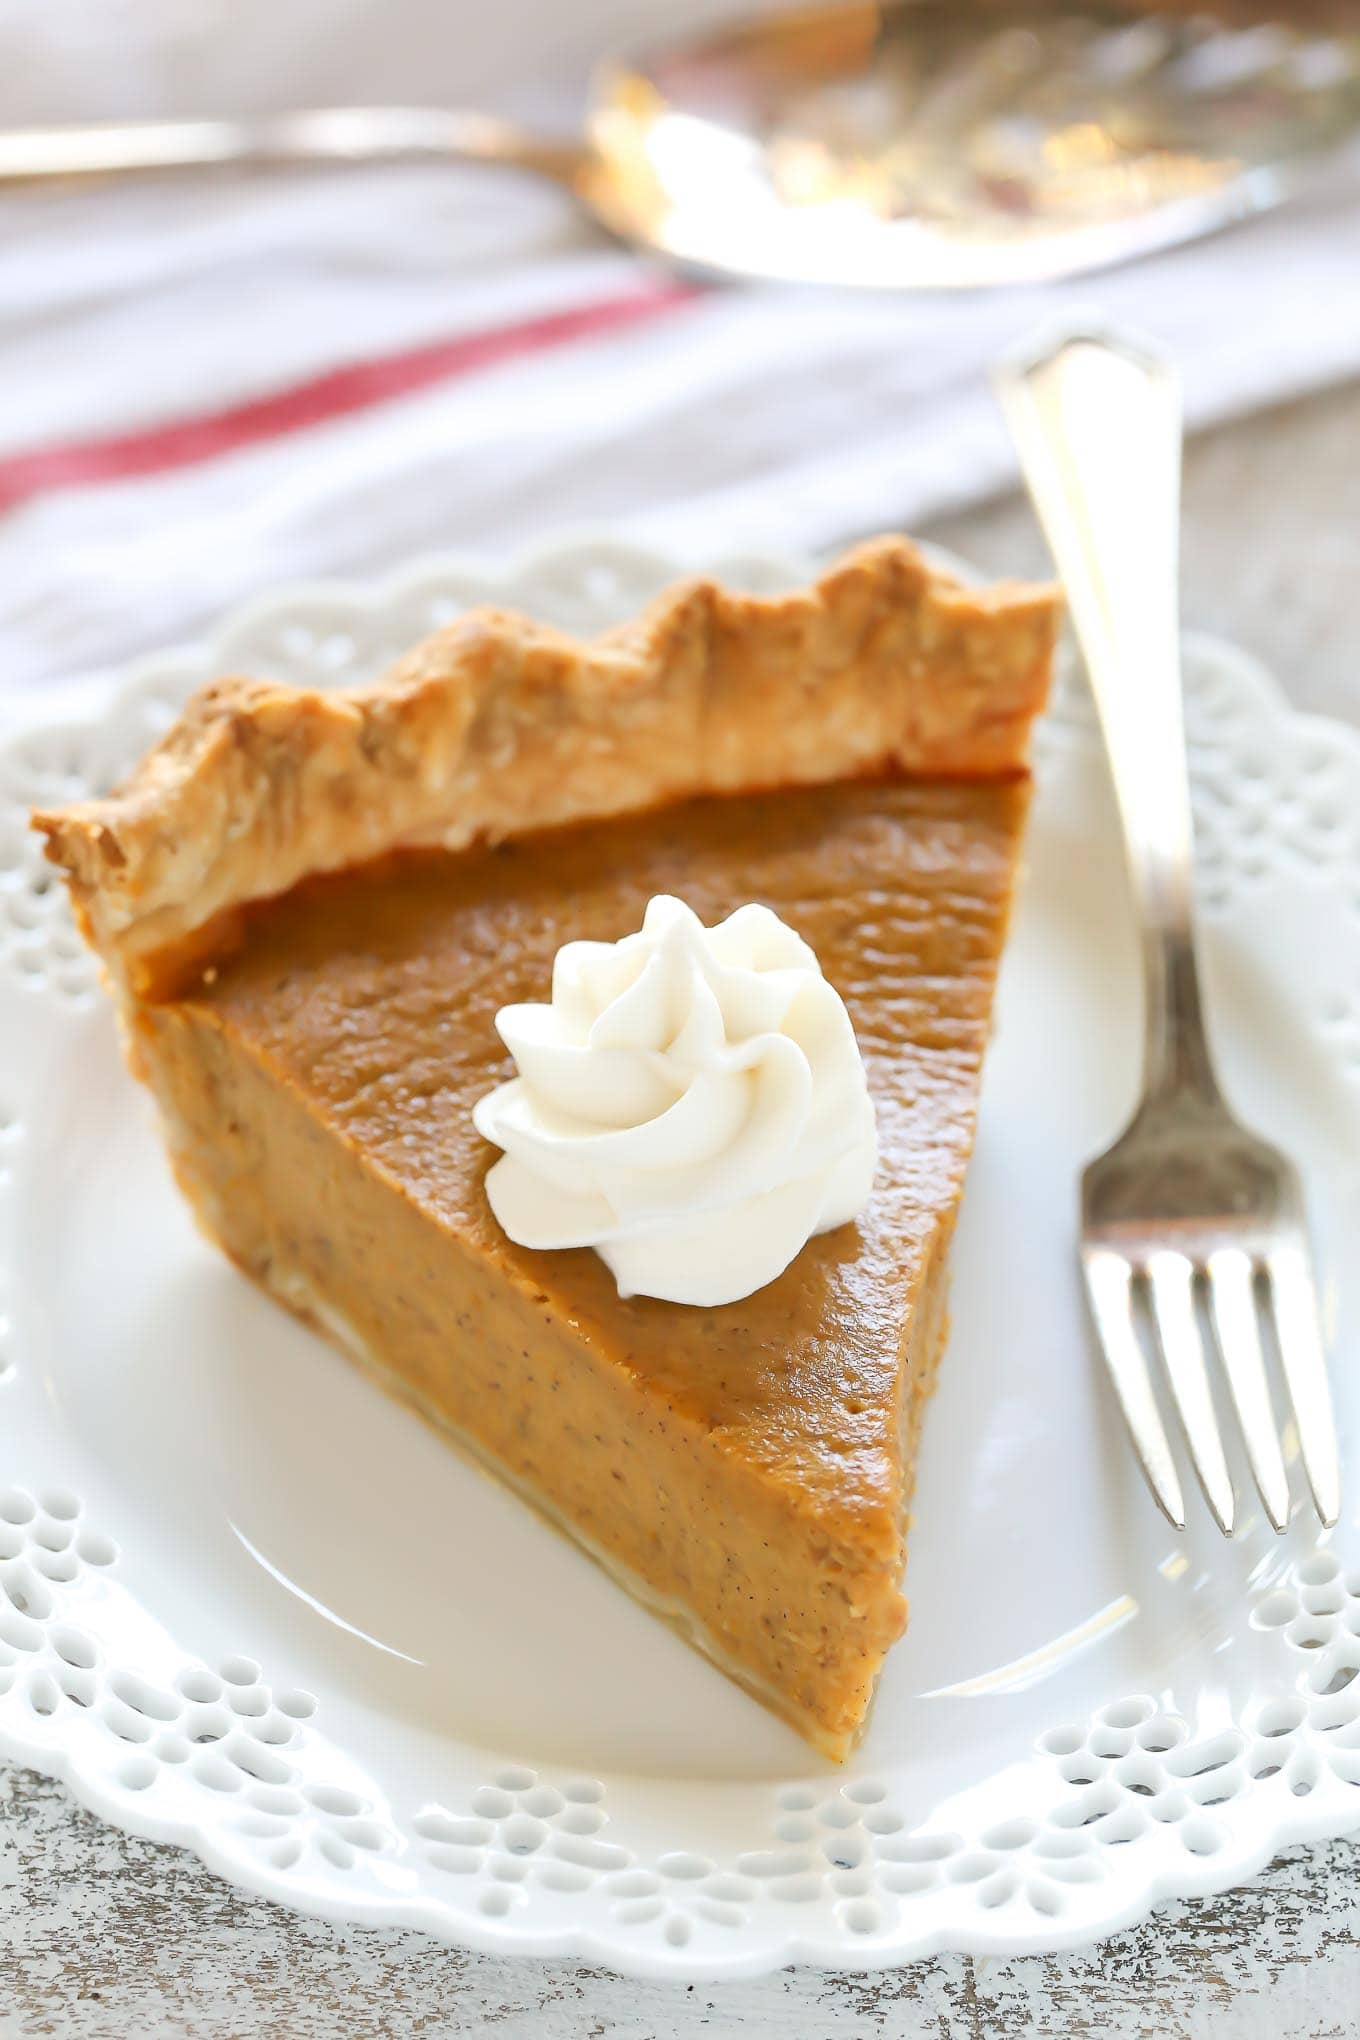 How to make pumpkin pie with premade crust